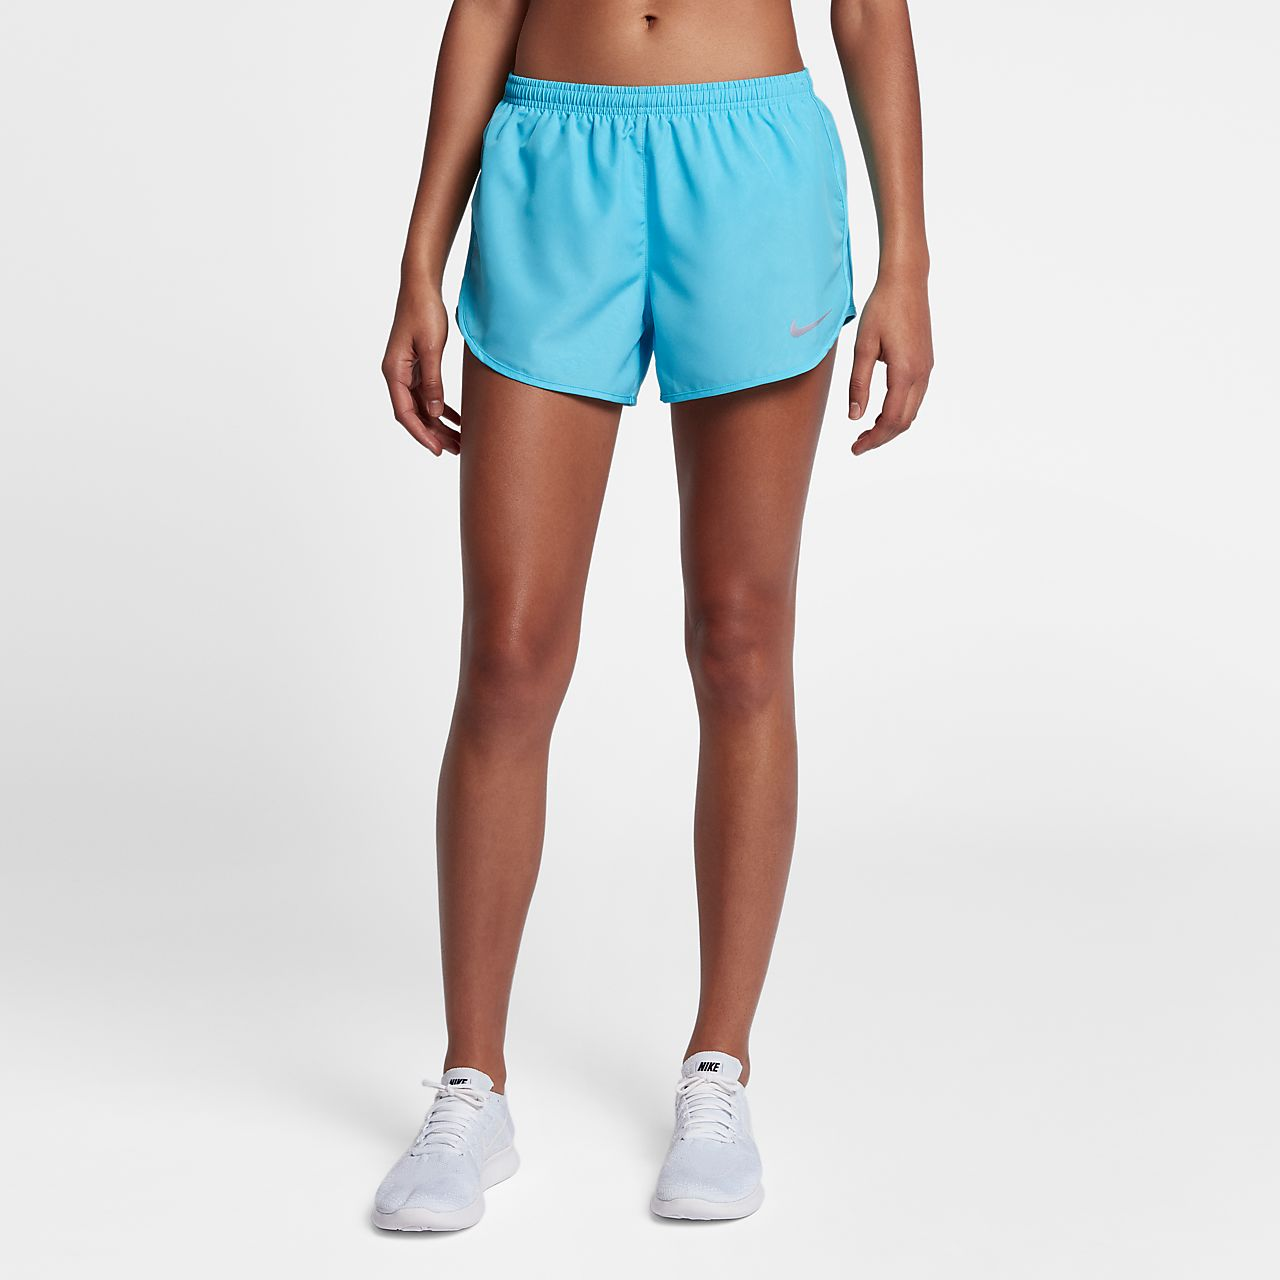 Nike Womens Running Shorts - Nike 3